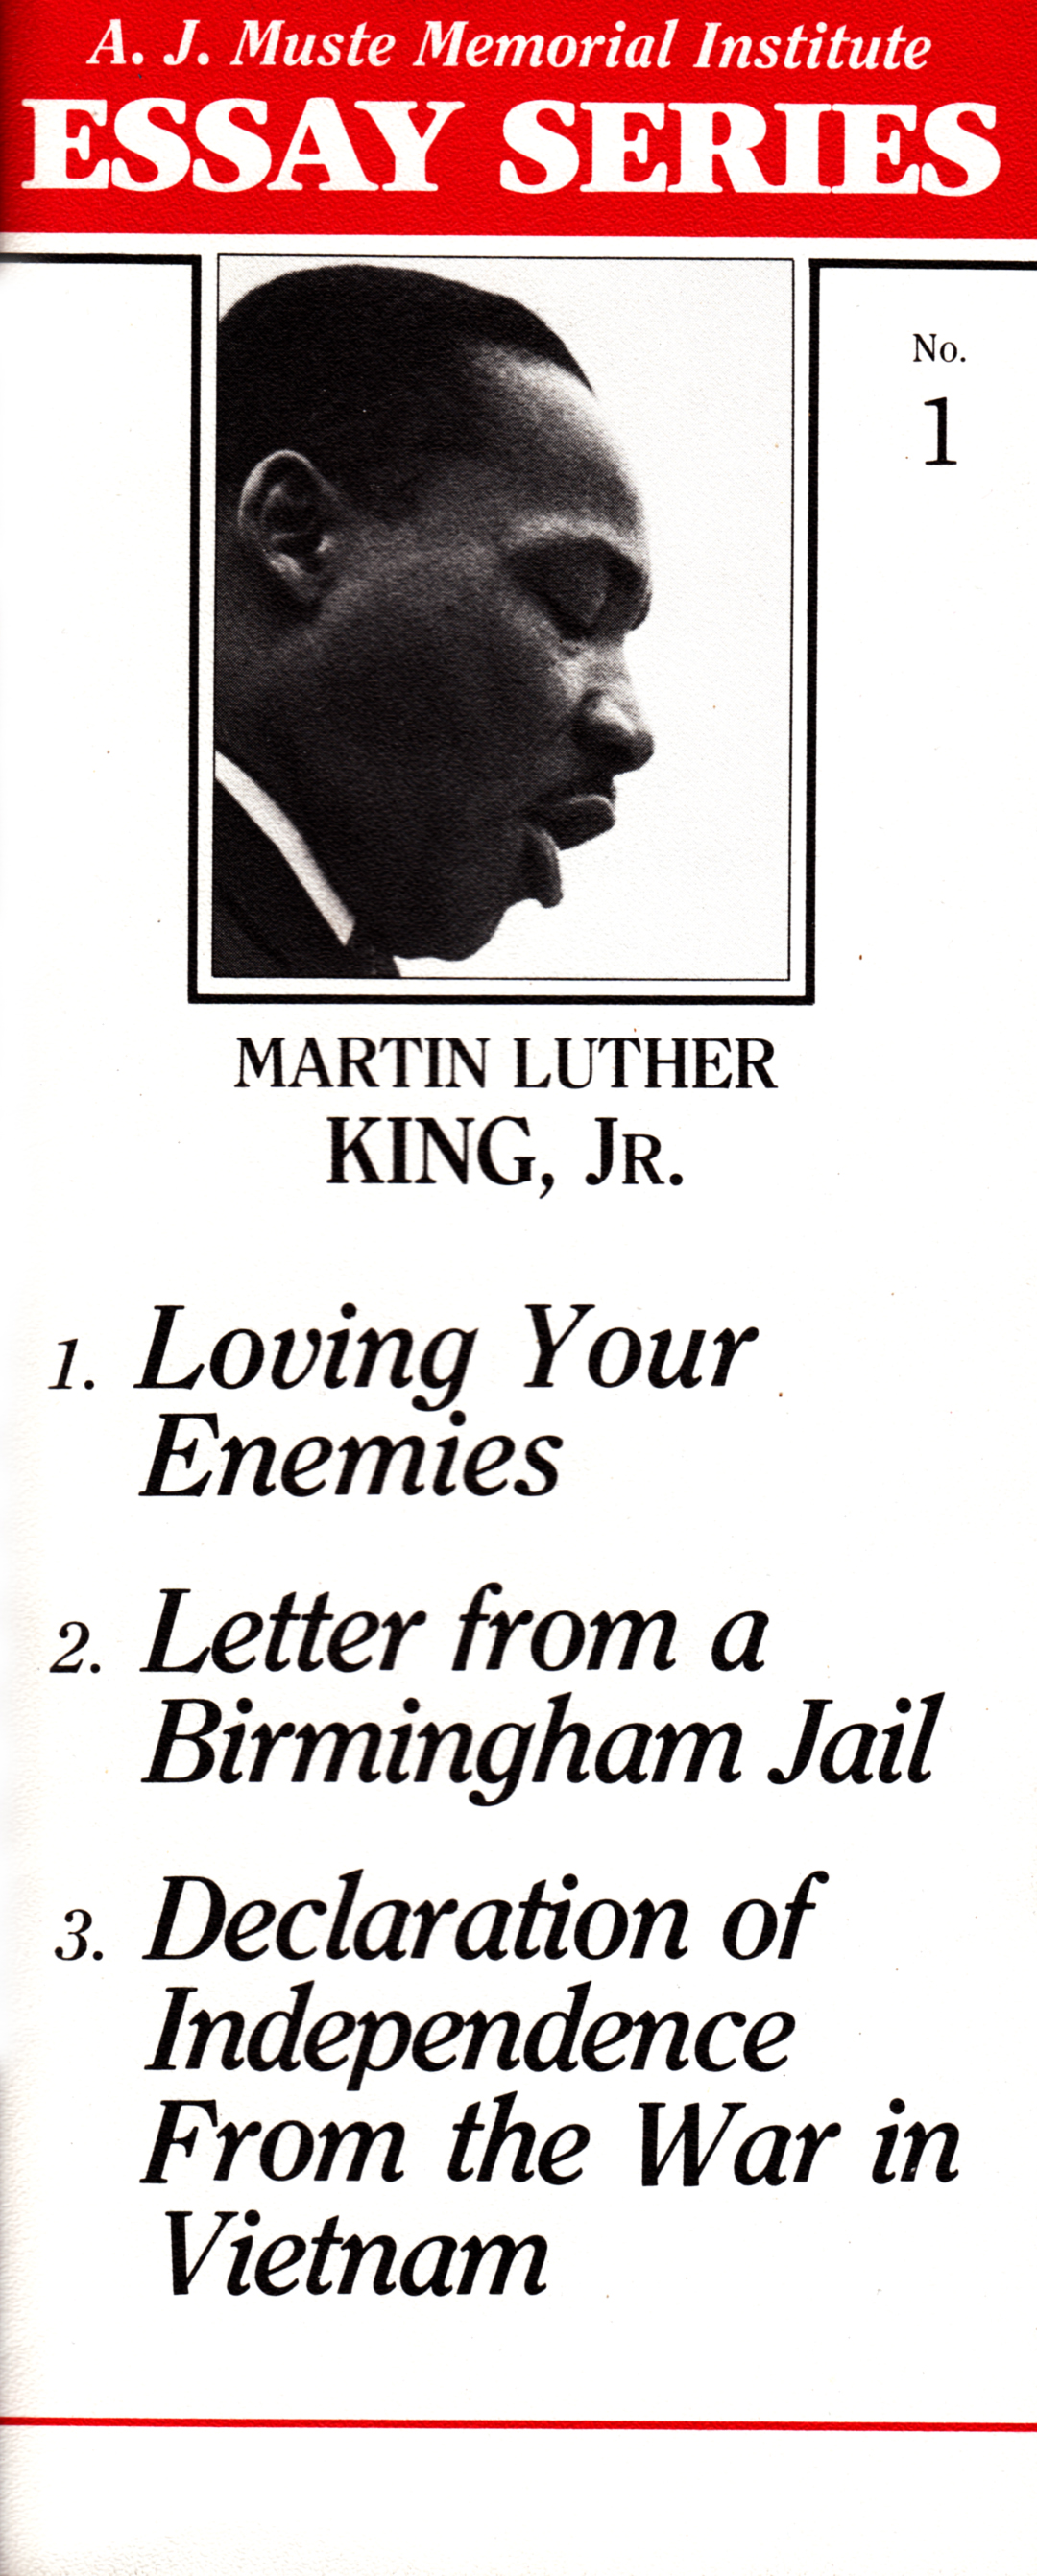 martin luther king jr essay Free essay on martin luther king jr available totally free at echeatcom, the largest free essay community.